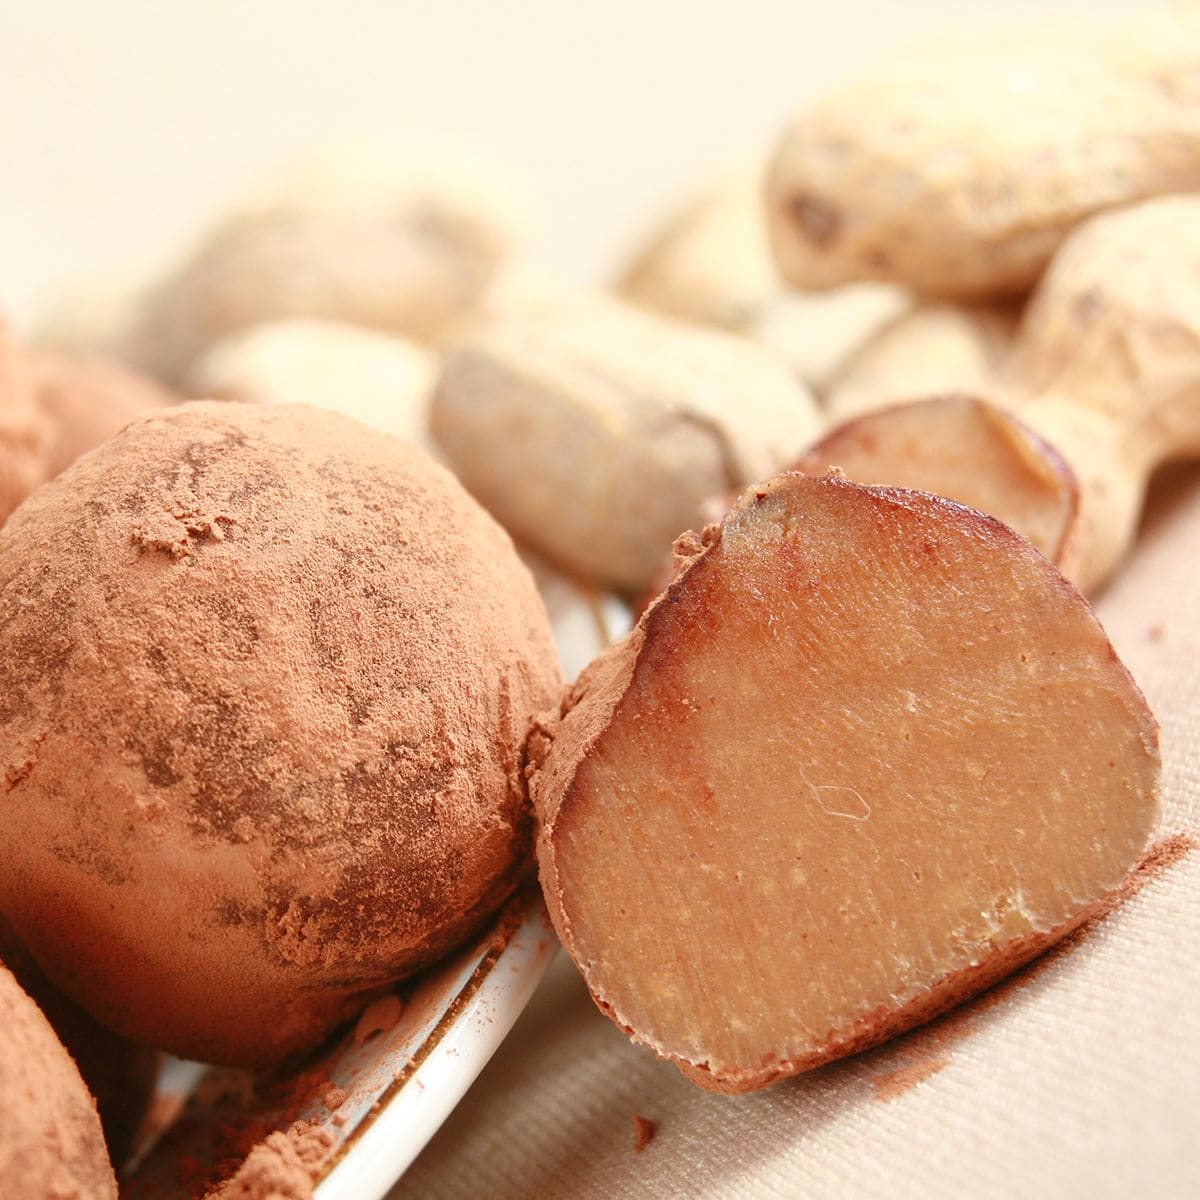 Several peanut butter coloured truffles - rolled in cocoa powder - are spilling off a small plate, with whole peanuts in the shell on display behind them.